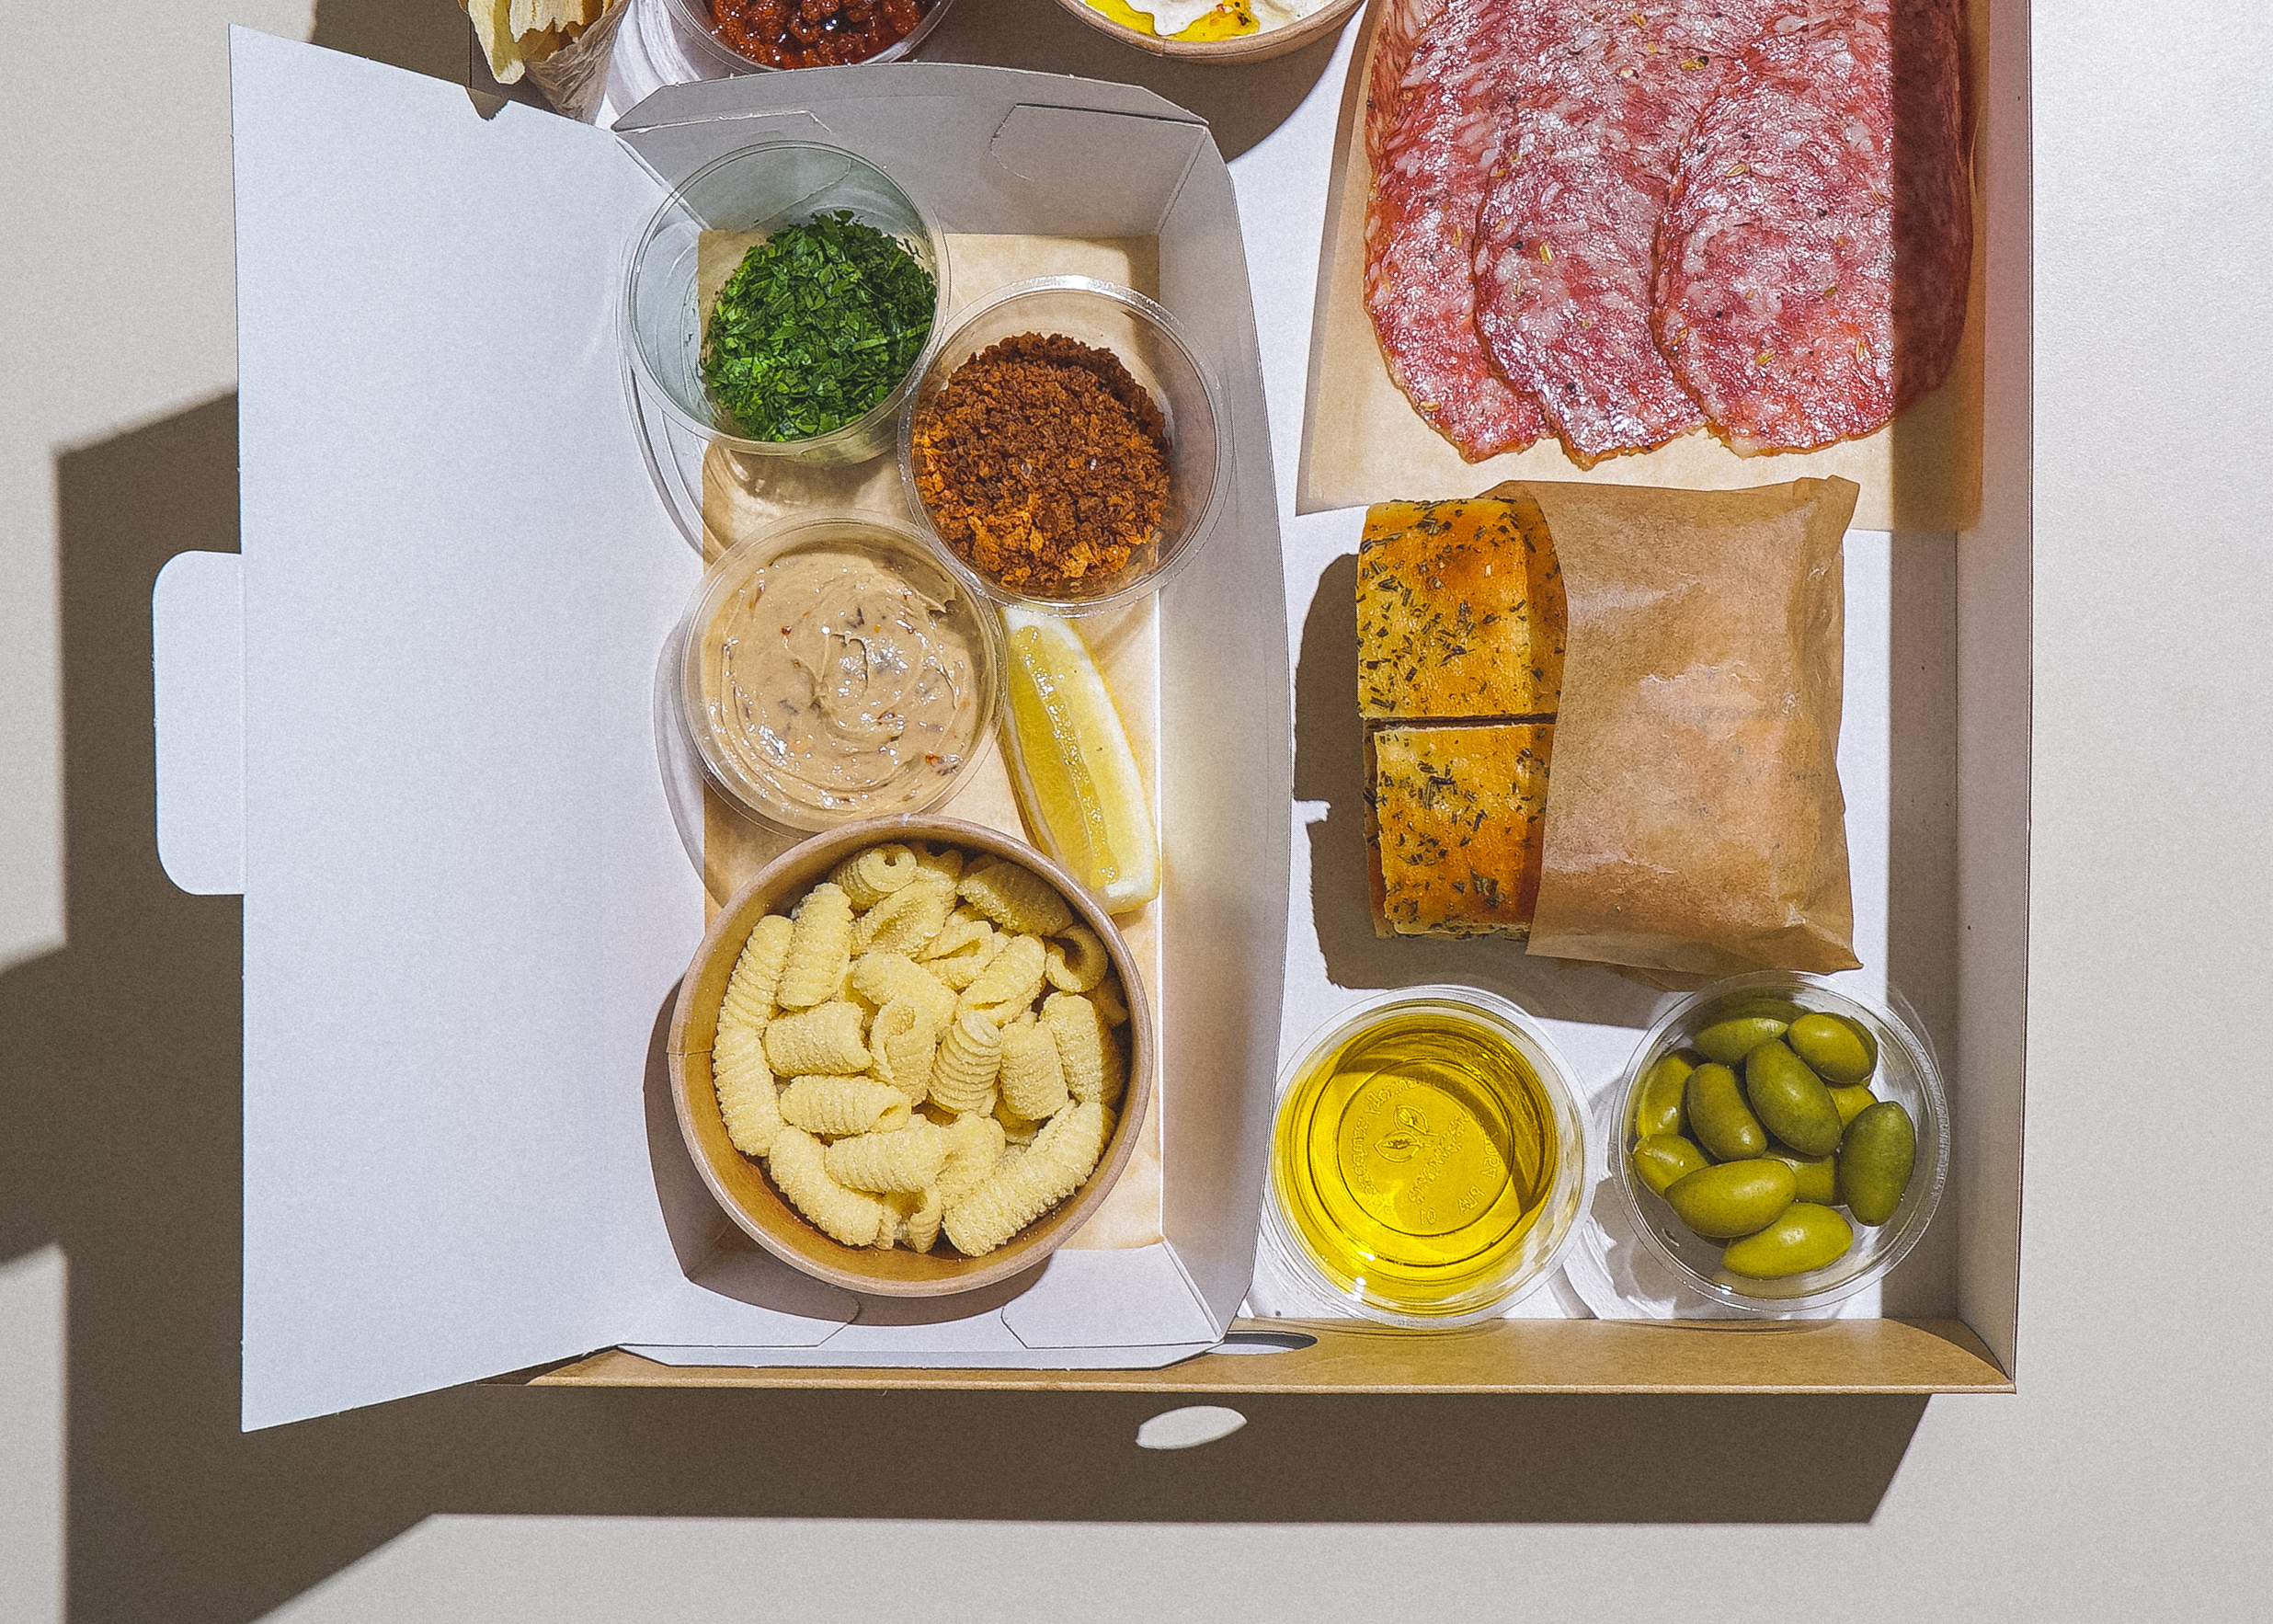 Fresh pasta, sauce, salumi, foccaccia, and olives in a cardboard meal kit box, shot from a birdseye view